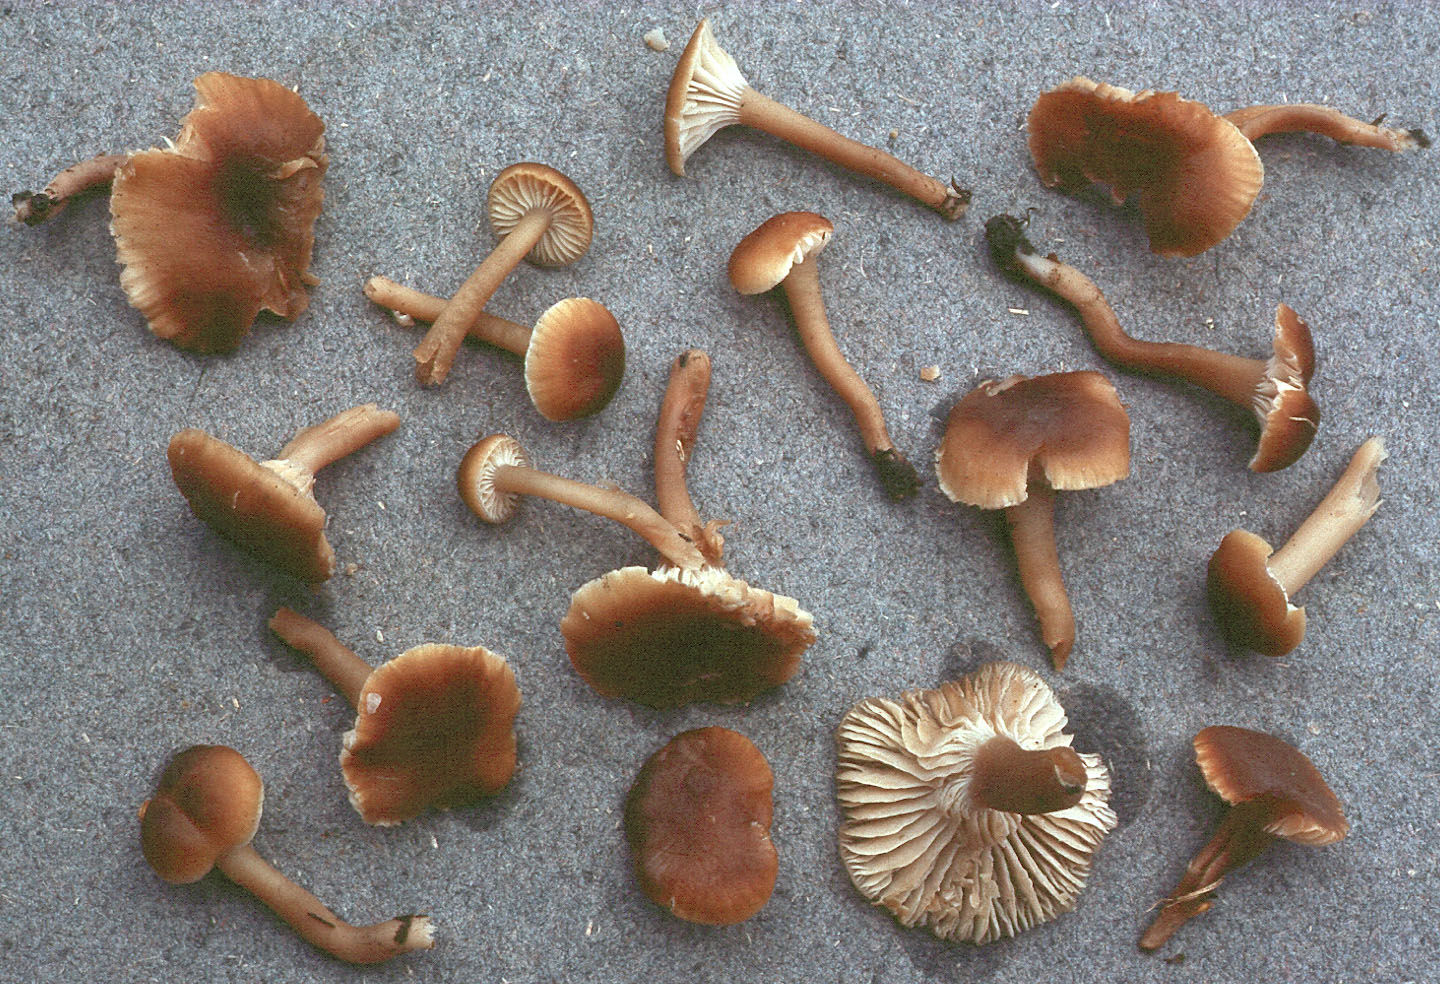 Camarophyllopsis schulzeri